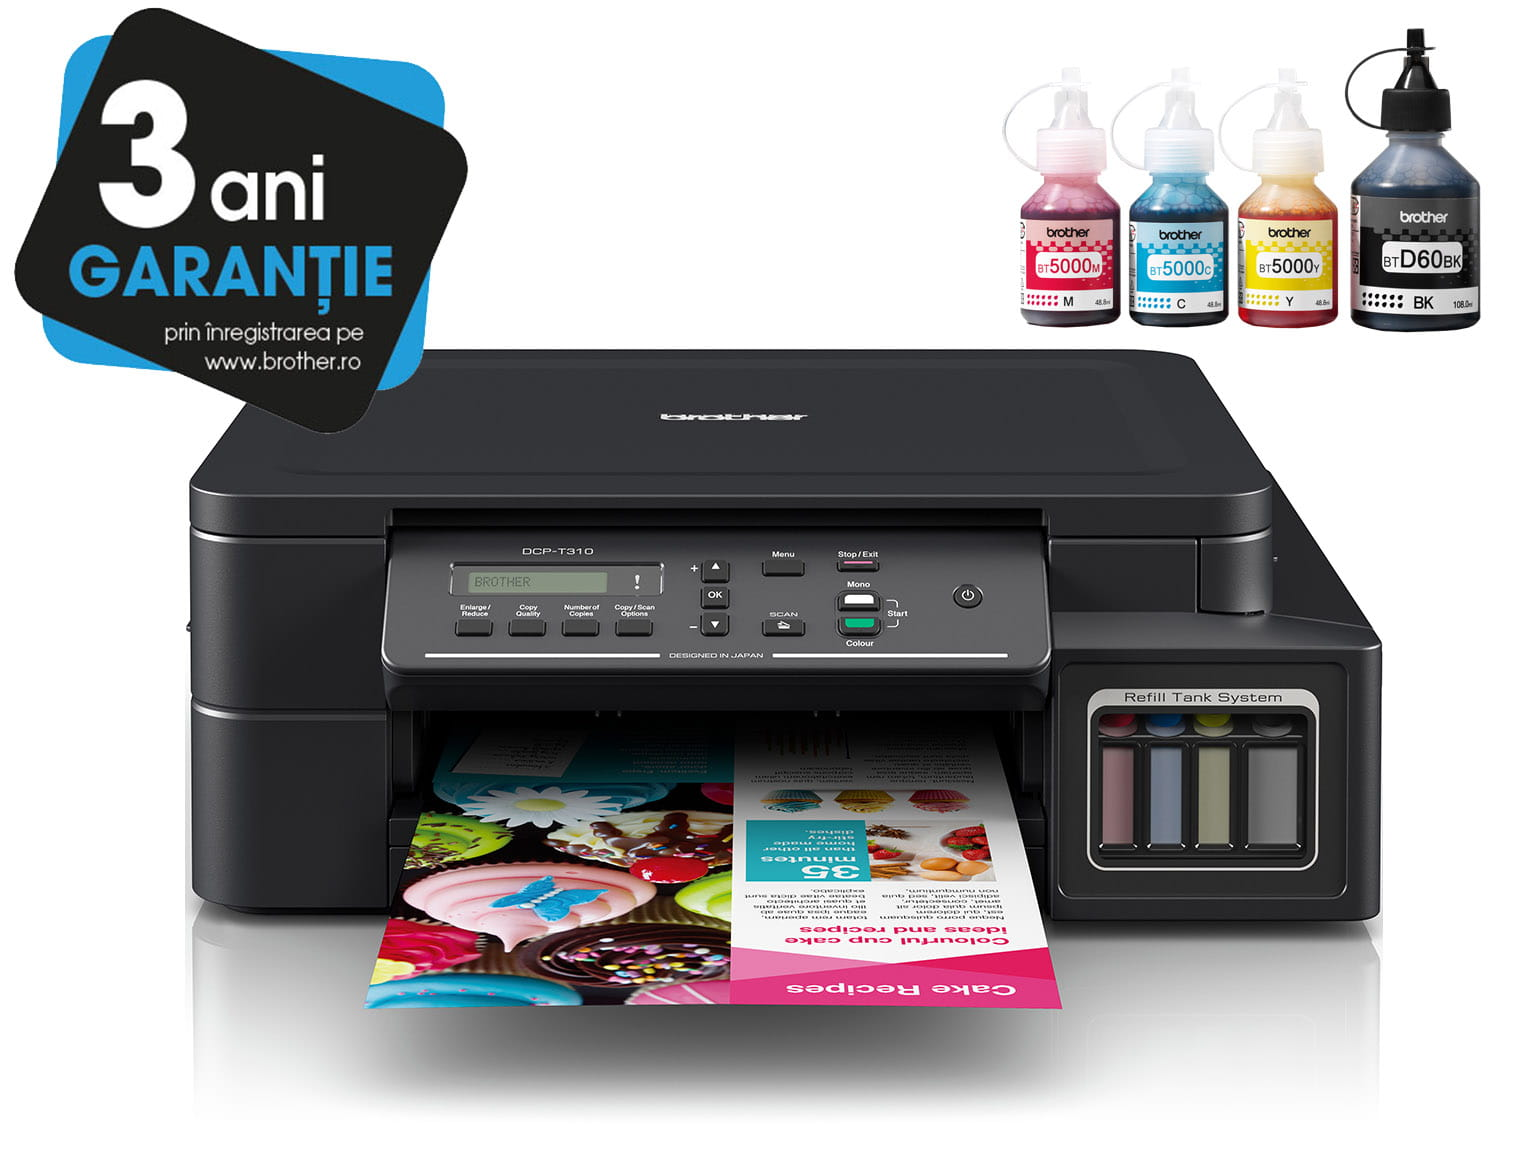 Brother InkBenefit Plus Inkjet Printer DCP-T310 with 3 Years Warranty Logotype and Ink Bottles